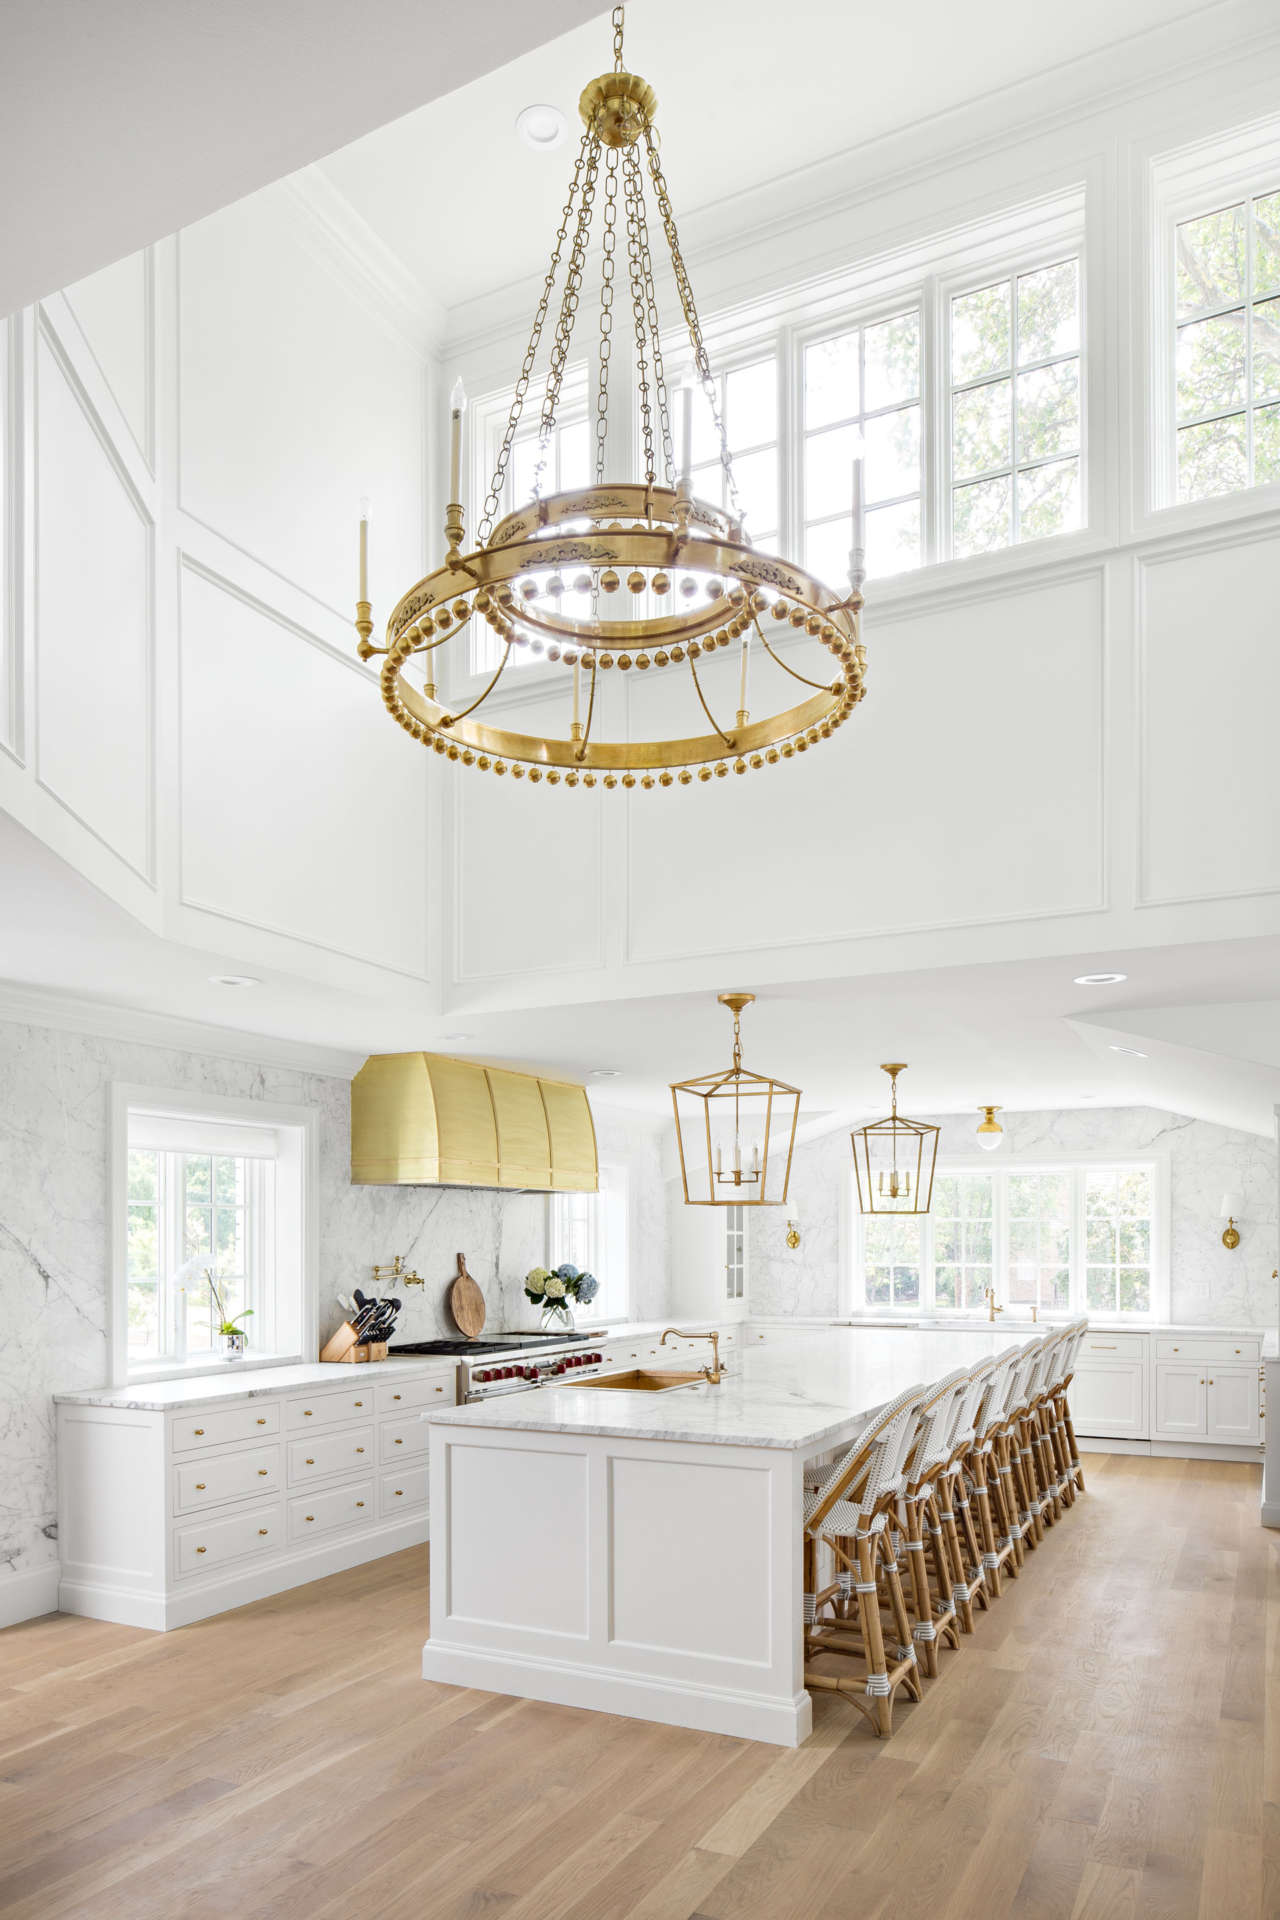 Luxurious kitchen with soaring ceiling! This two story kitchen by The Fox Group is a classic masterpiece. #kitchen #thefoxgroup #classicdesign